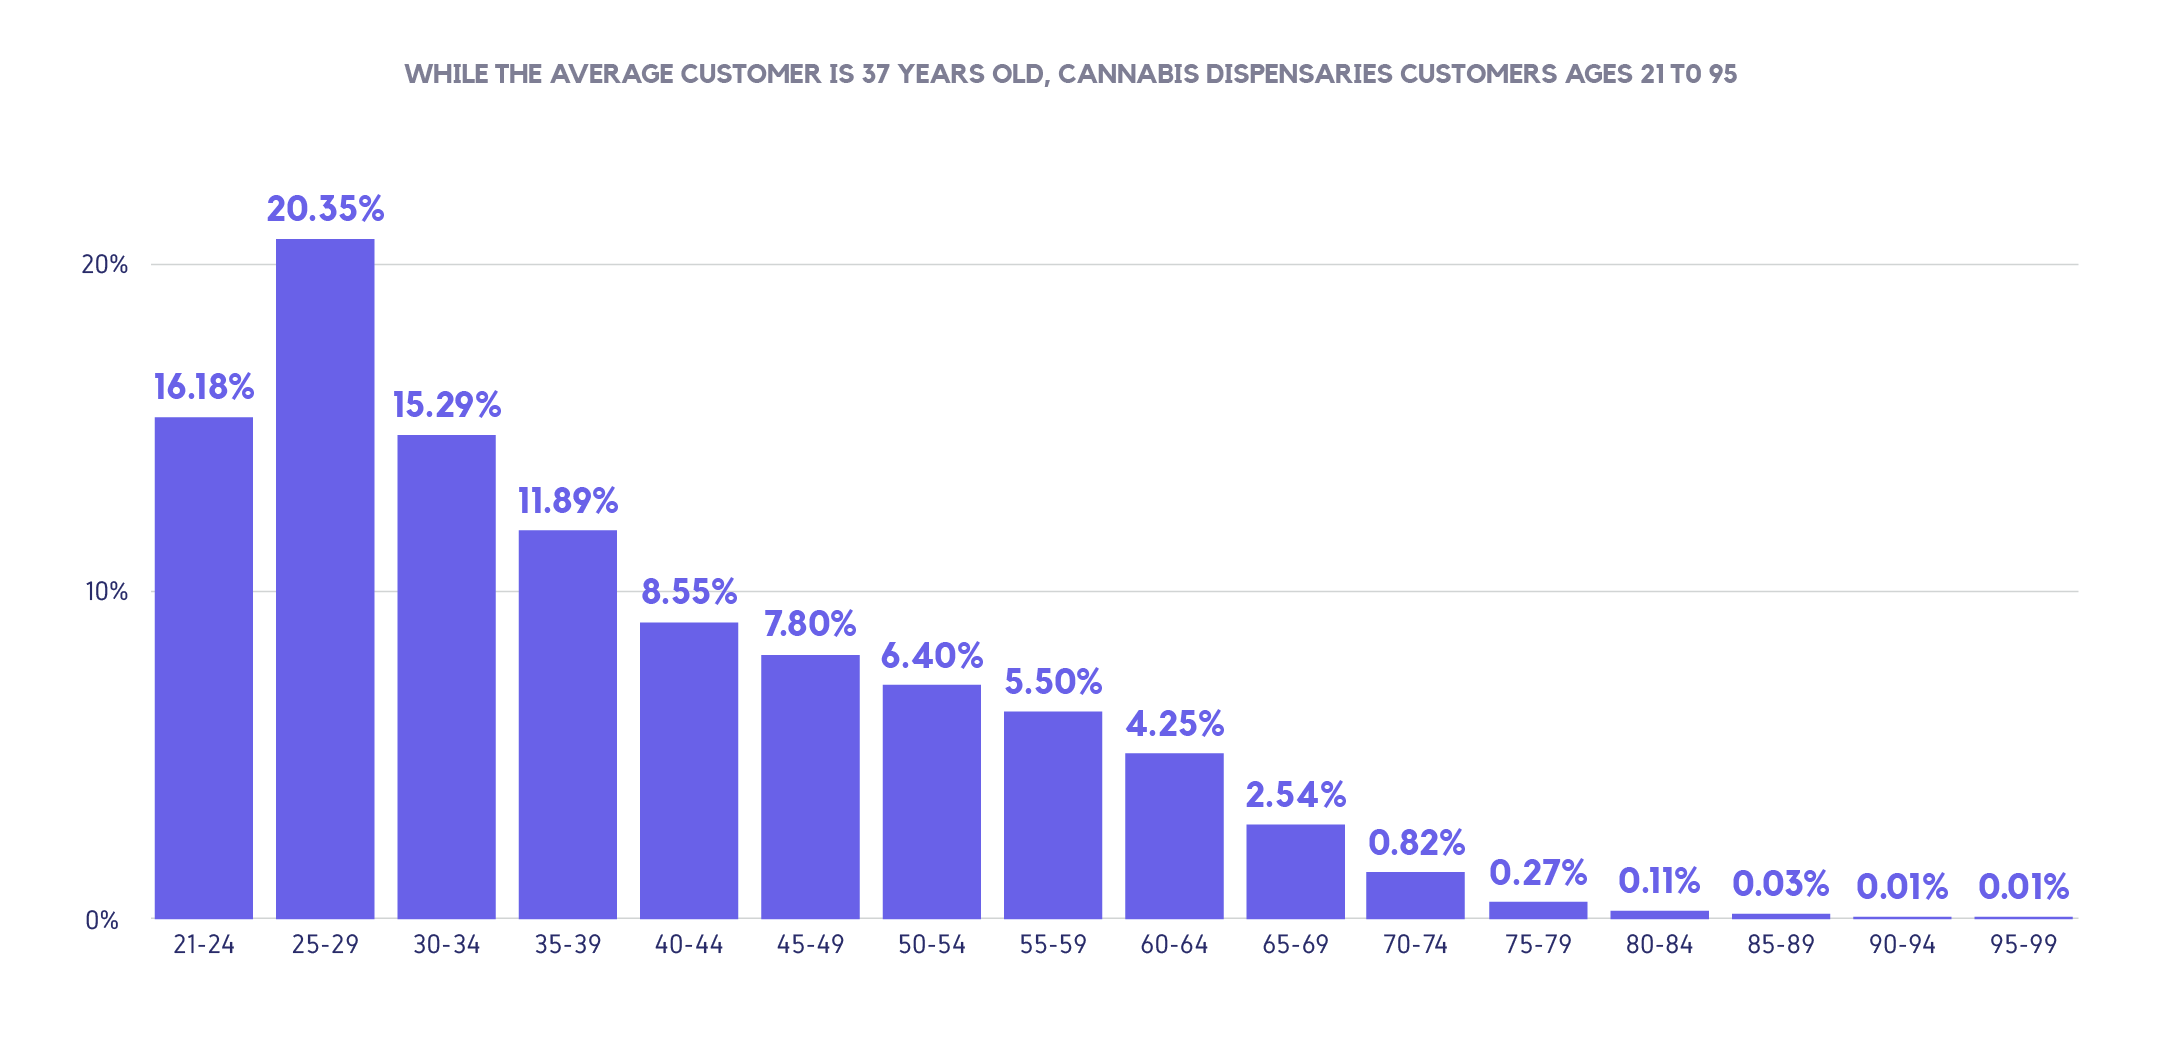 Cannabis purchases by age group